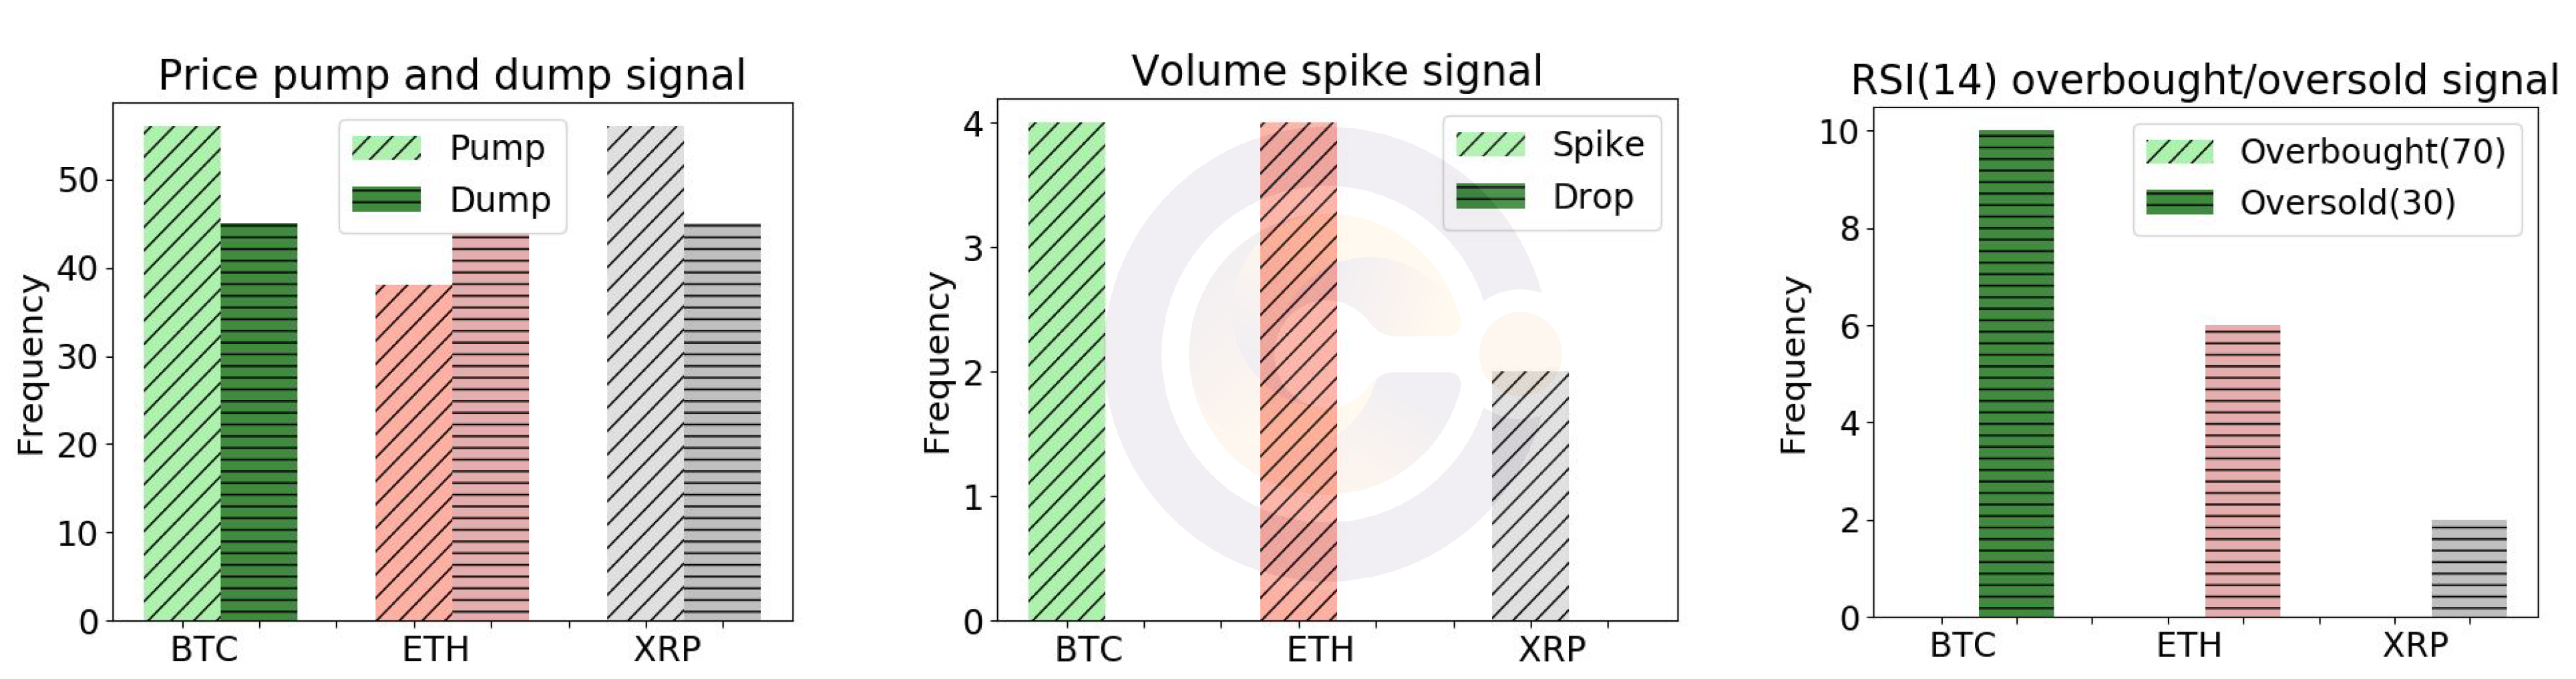 Blockchain - Price pump and dump signals, volume spike signals, and RSI (14) signals at Binance for BTC/USD, ETH/USD and XRP/USD between June 1 to June 30, 2019.